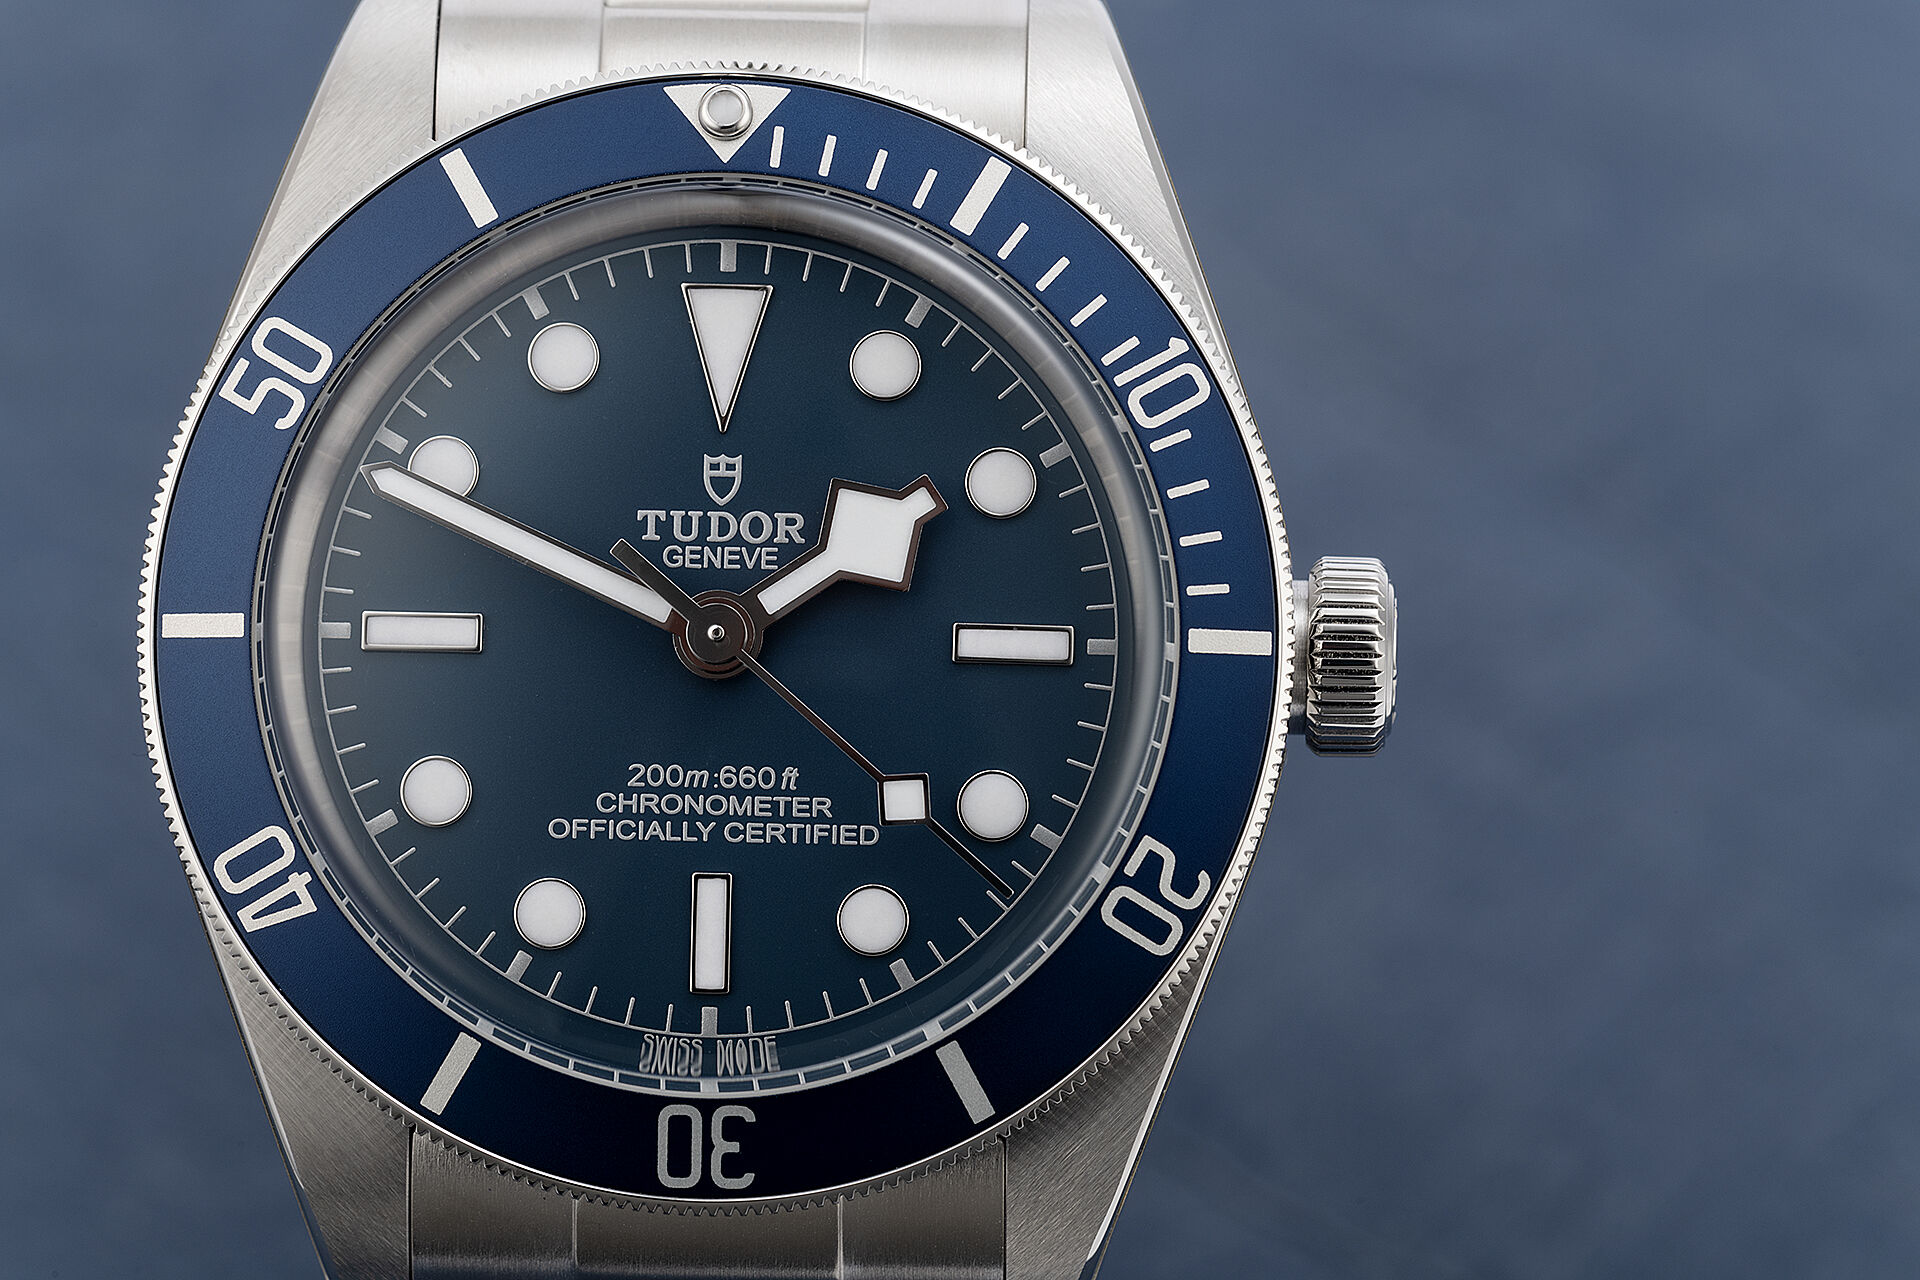 ref 79030B | 5 Year Tudor Warranty | Tudor Black Bay Fifty-Eight